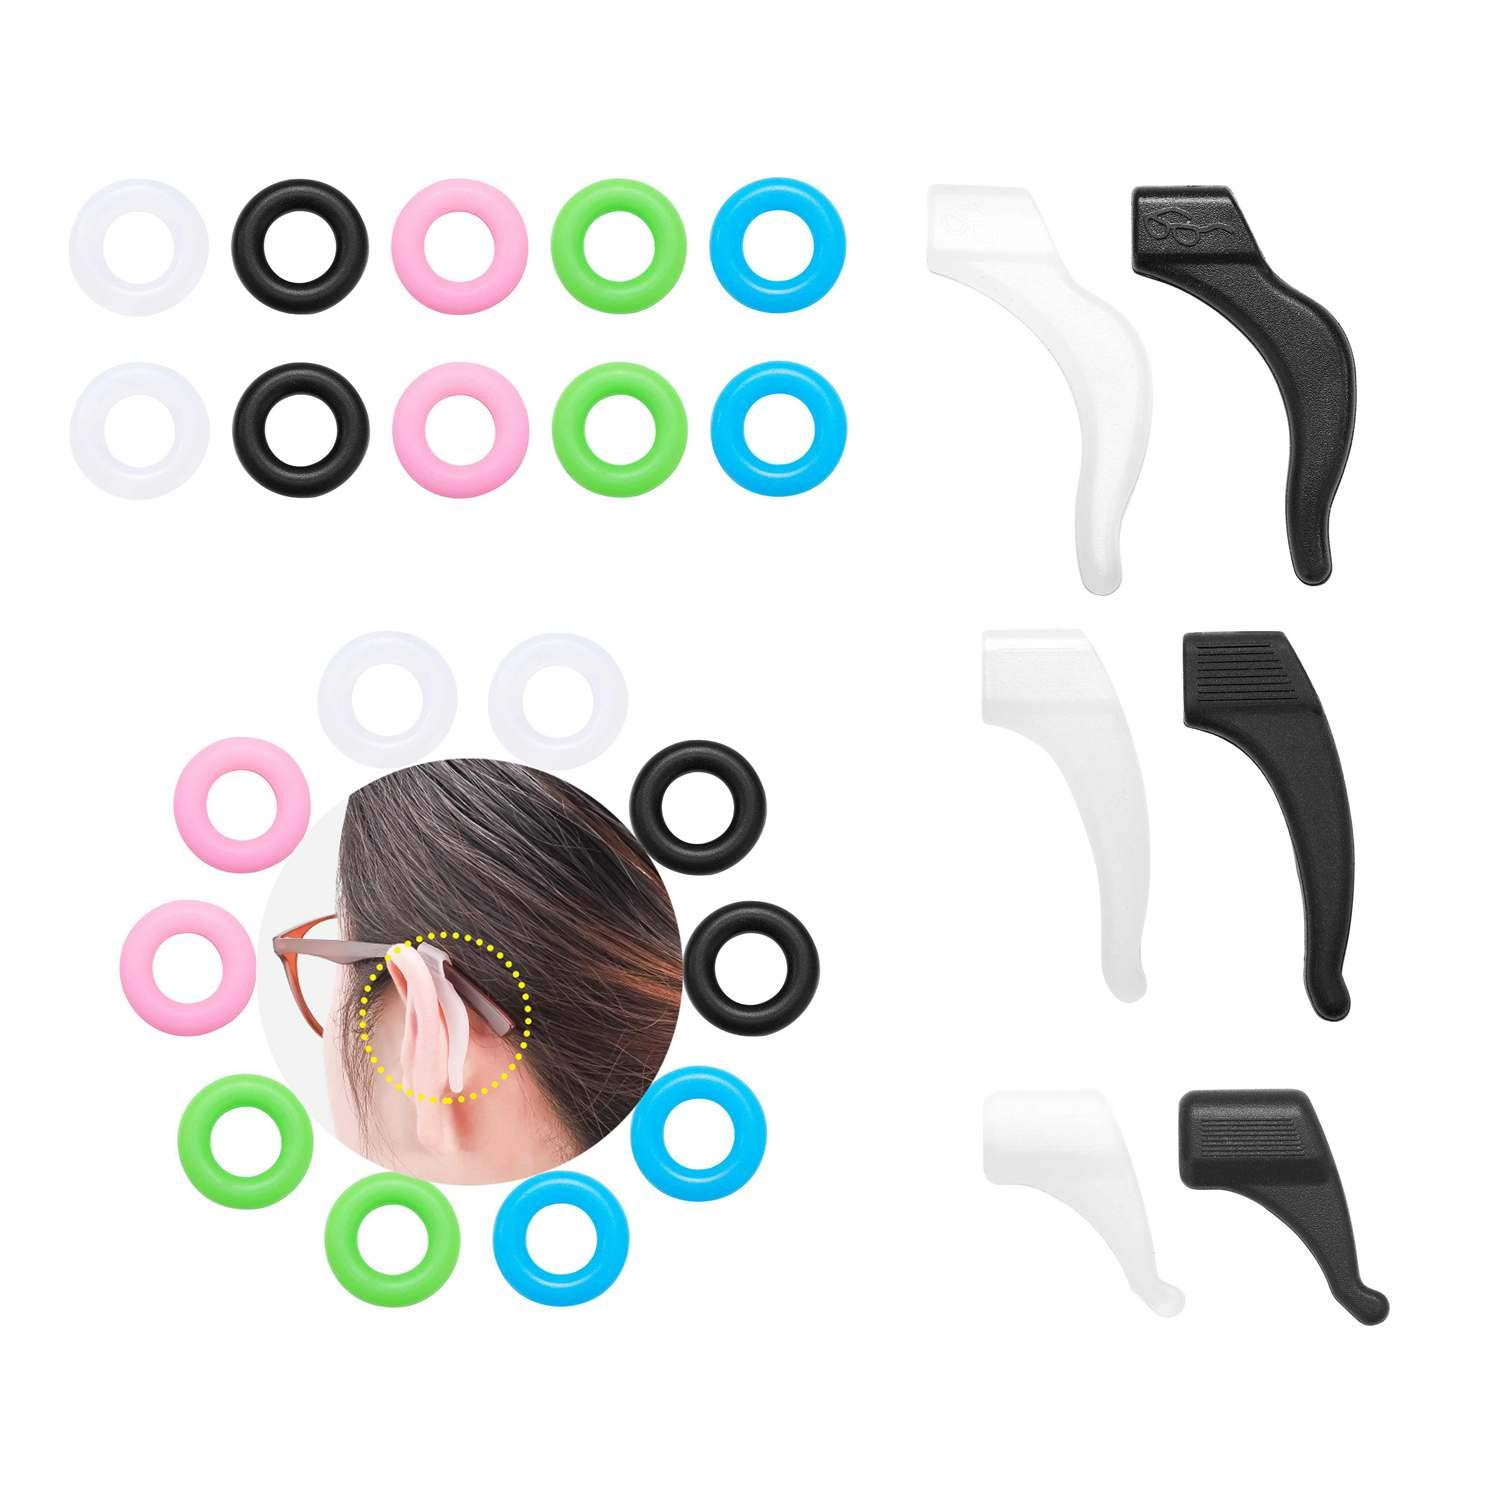 Litorange 64 Pairs Kids and Adults Comfortable Silicone Glasses Ear Hook,Anti-Slip Temple Tip Holder Ring For Spectacle Sunglasses Reading Sports Eyewear Eyeglass Frame Accessories by Litorange